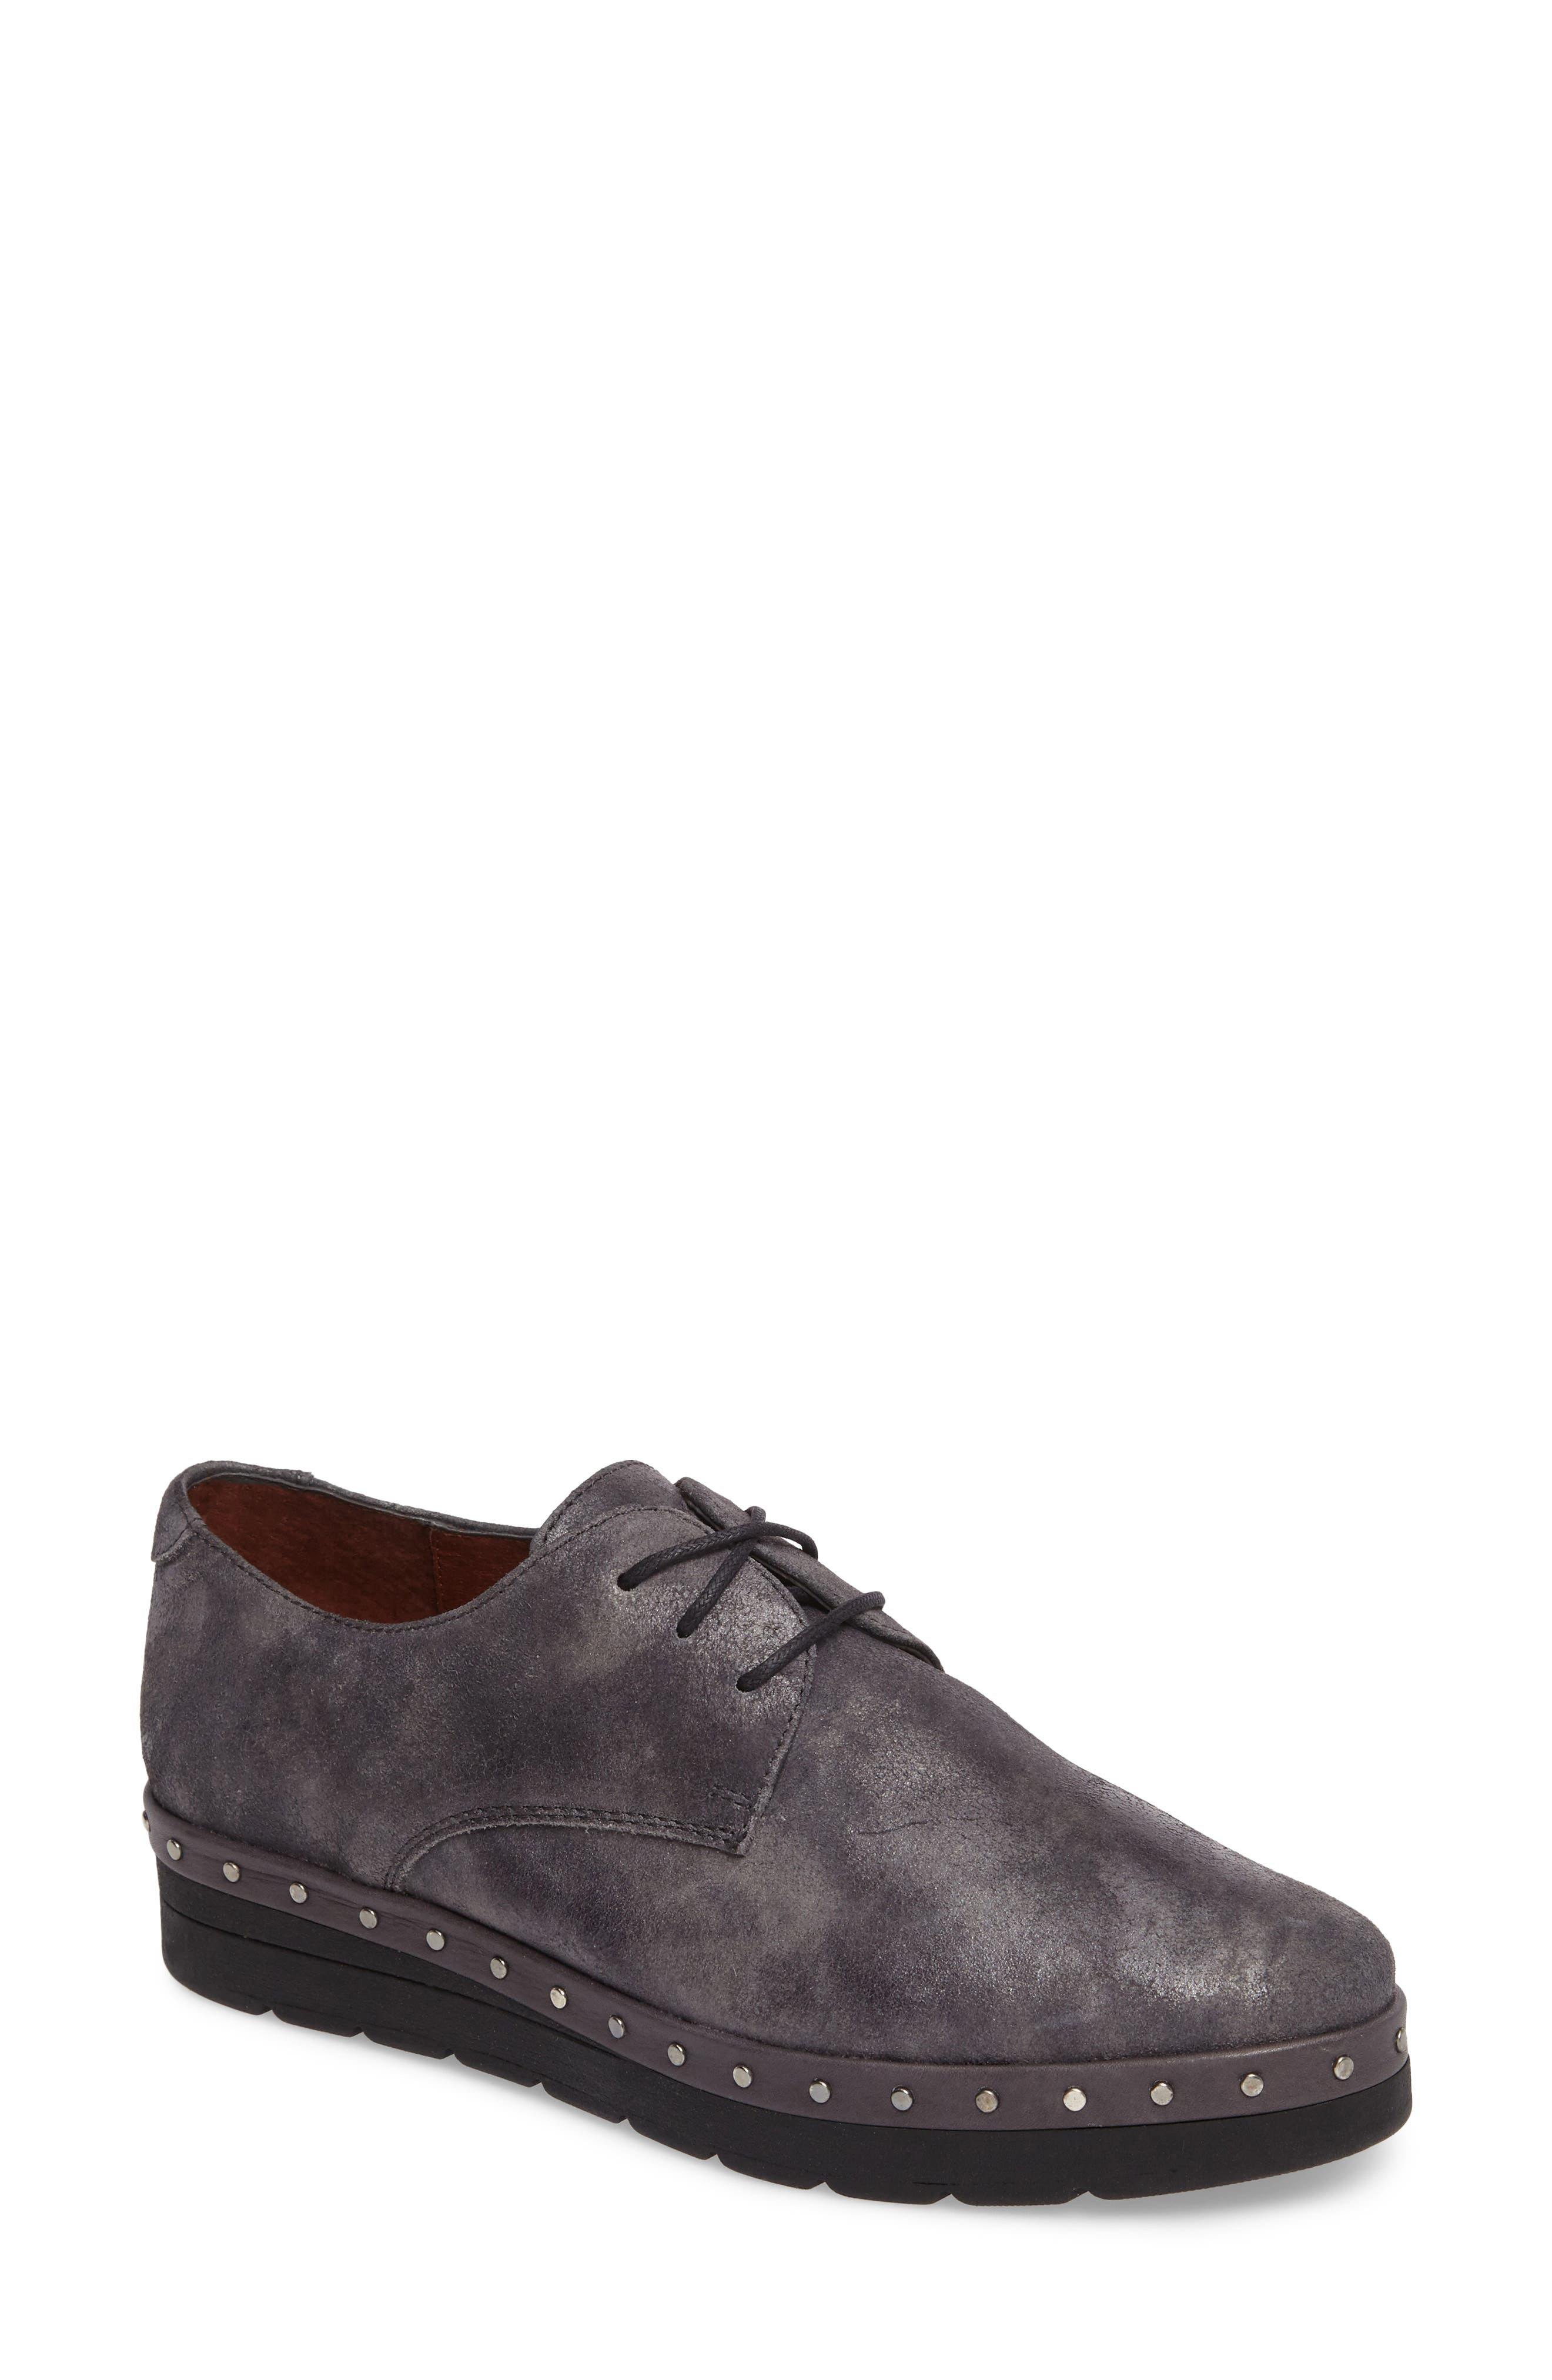 Abbot Oxford,                         Main,                         color, BRUT GREY LEATHER